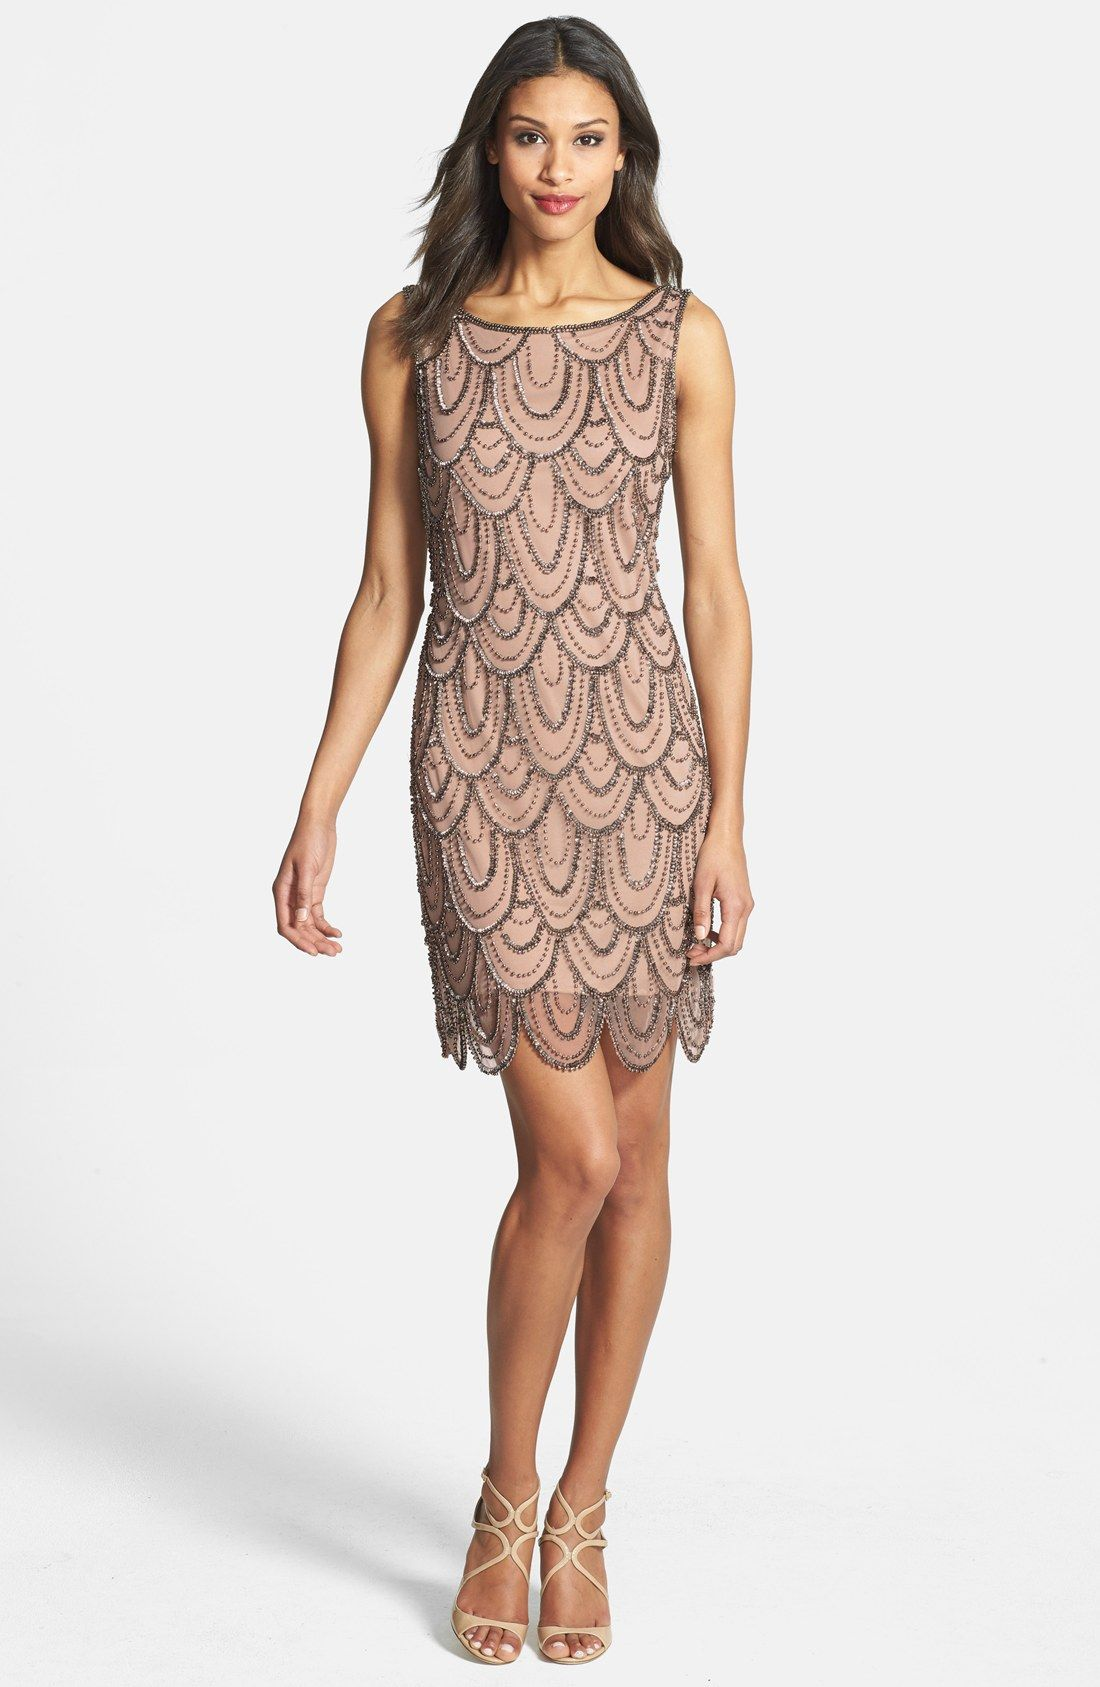 petite cocktail dresses best dress ideas pinterest nordstrom